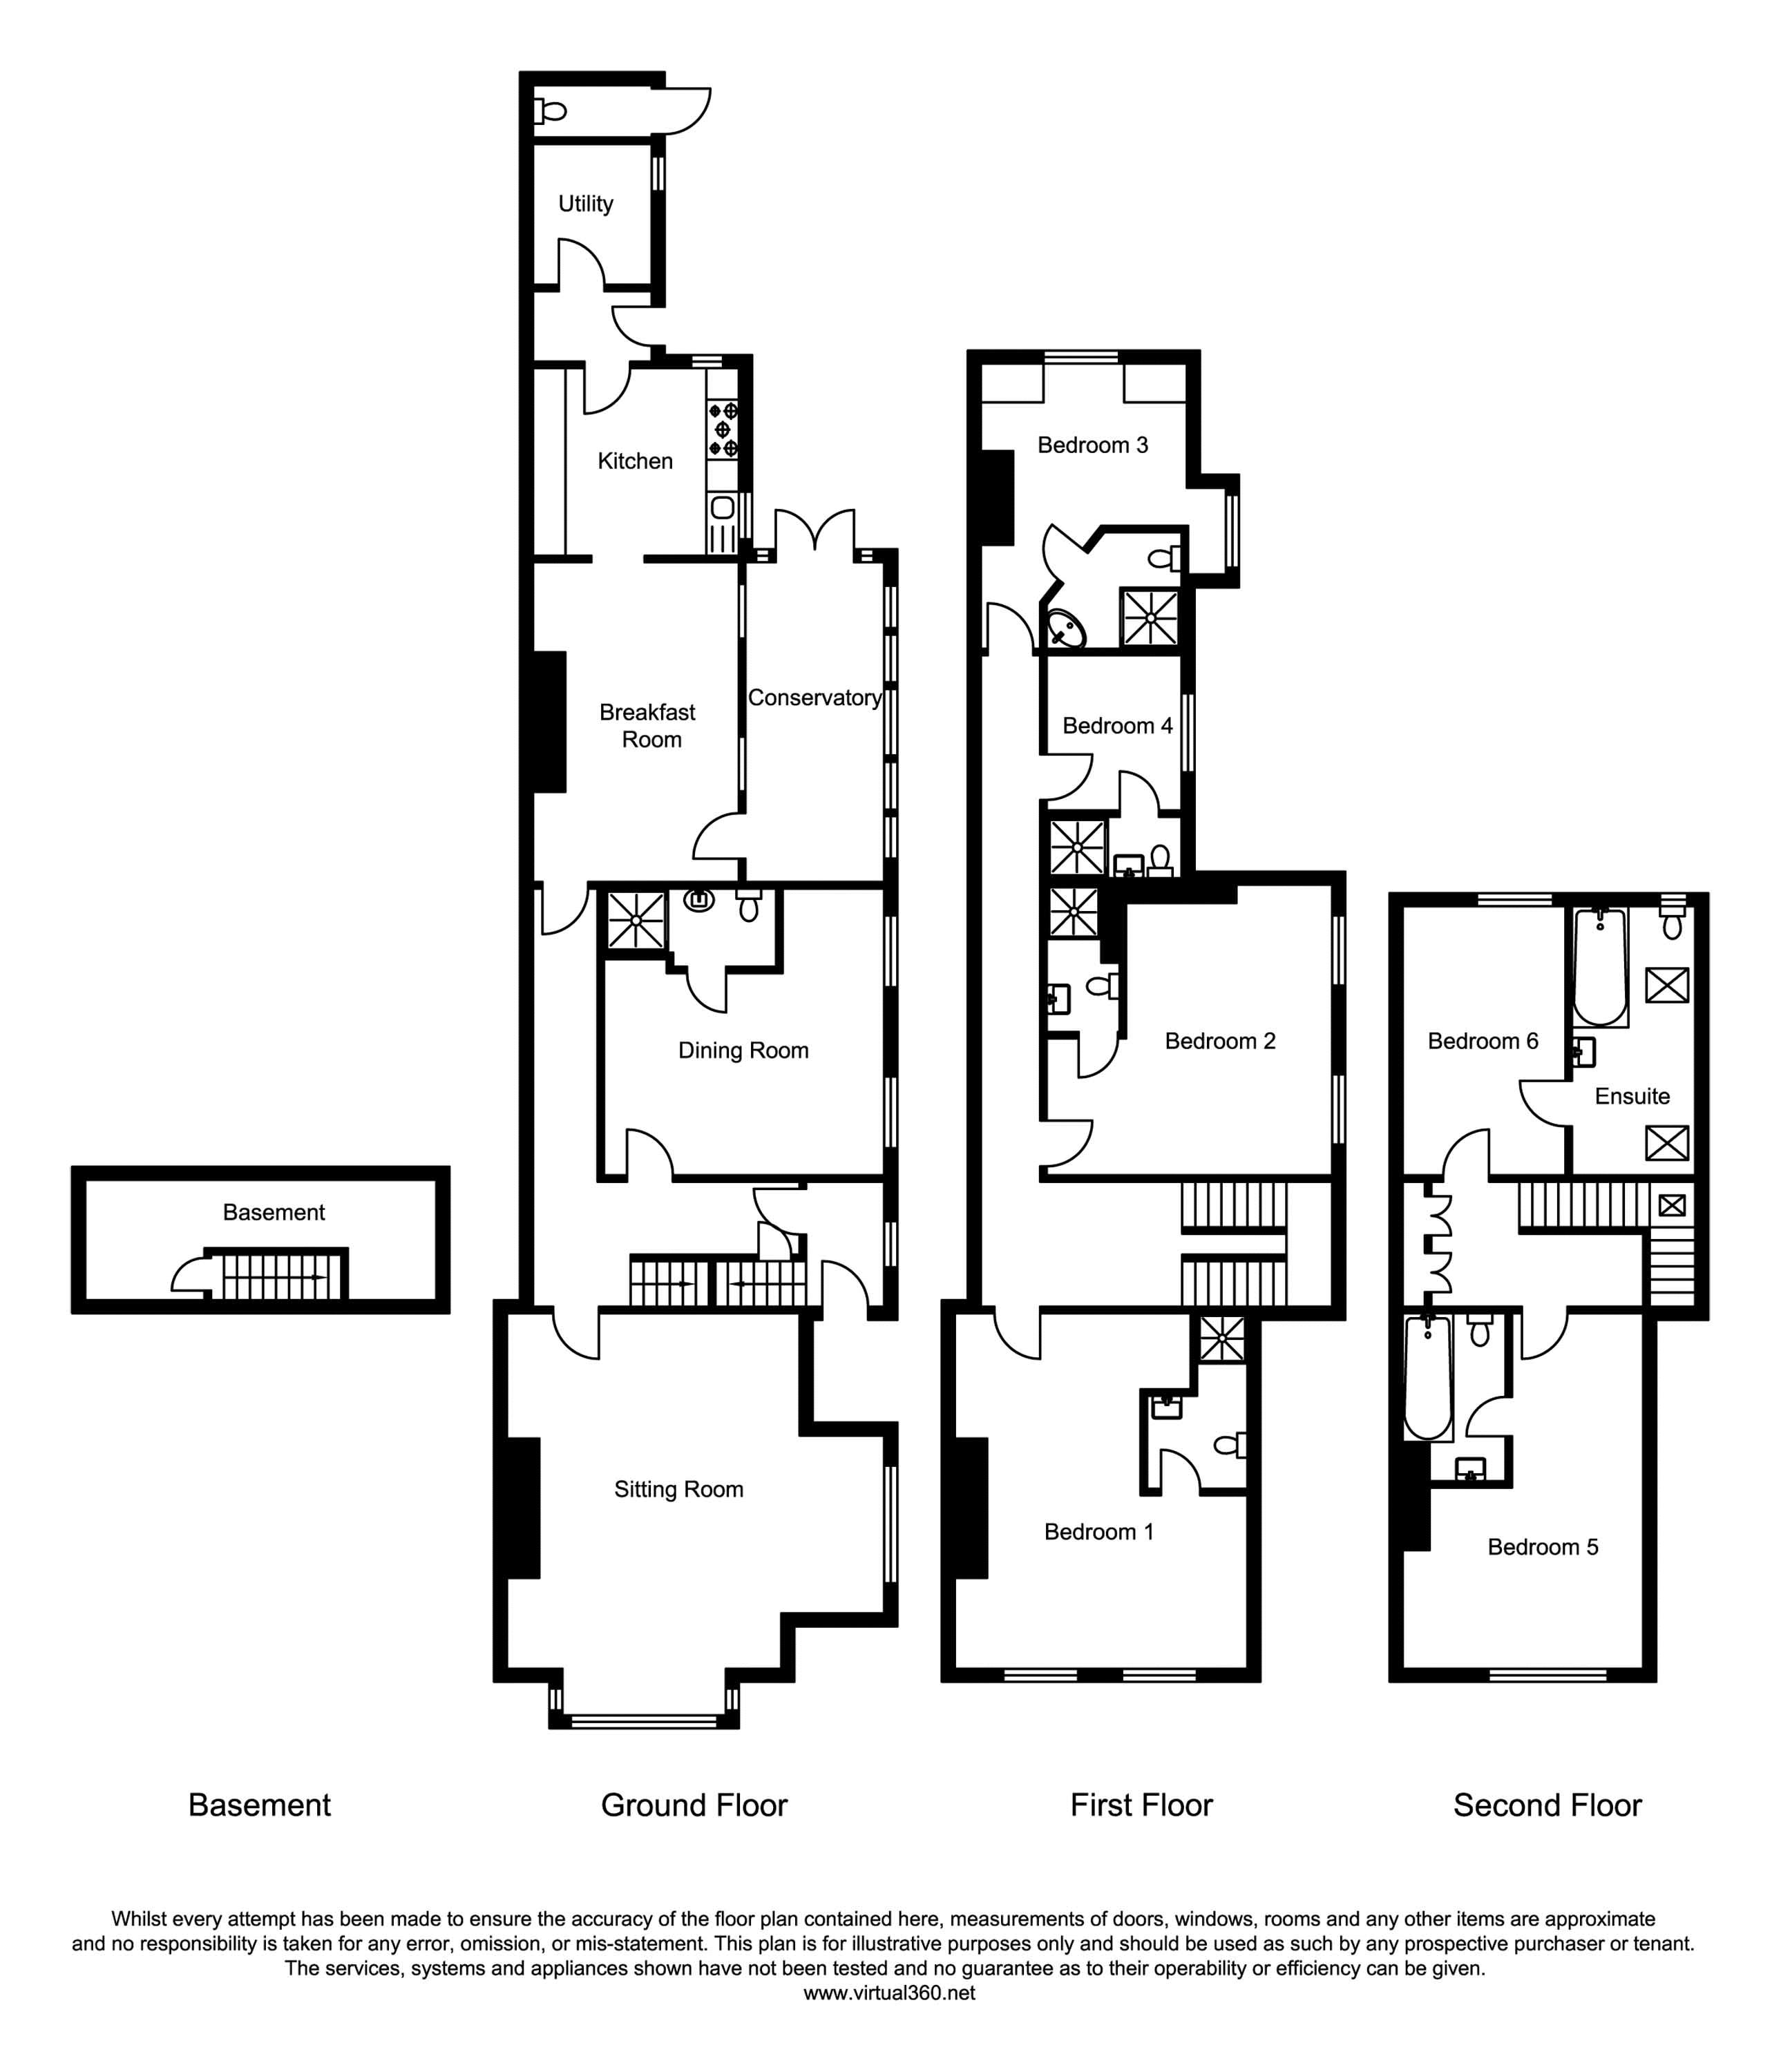 Fulford Road, York floor plan